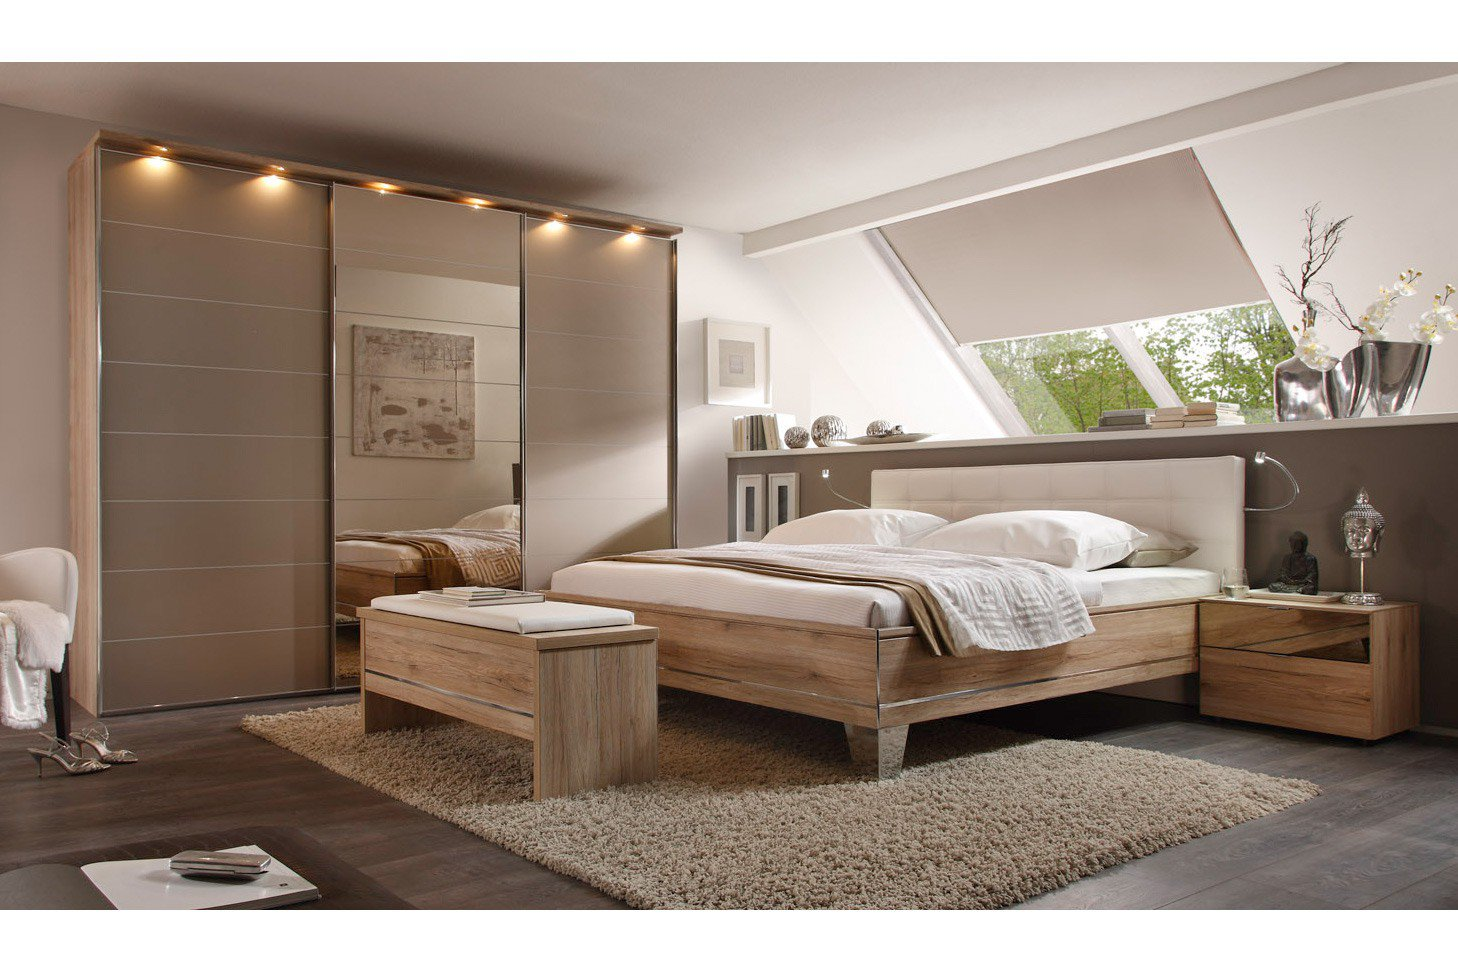 schlafzimmer set 160x200 d nisches bettenlager bettdecken bergr e schlaf gut bettw sche c a. Black Bedroom Furniture Sets. Home Design Ideas